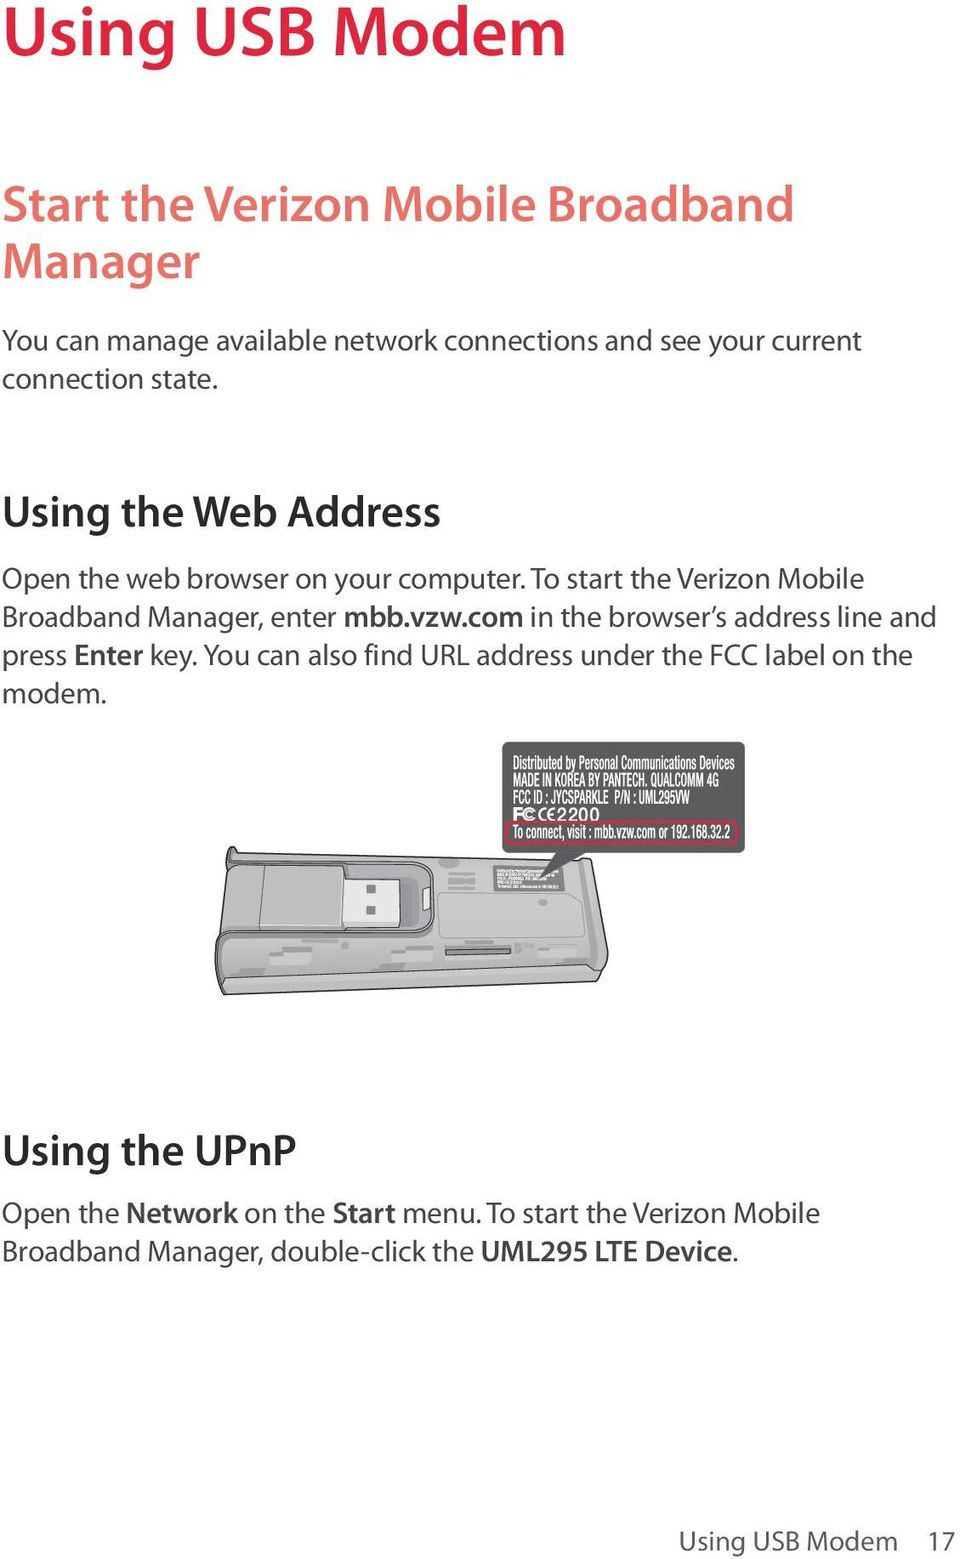 To start the Verizon Mobile Broadband Manager, enter mbb.vzw.com in the